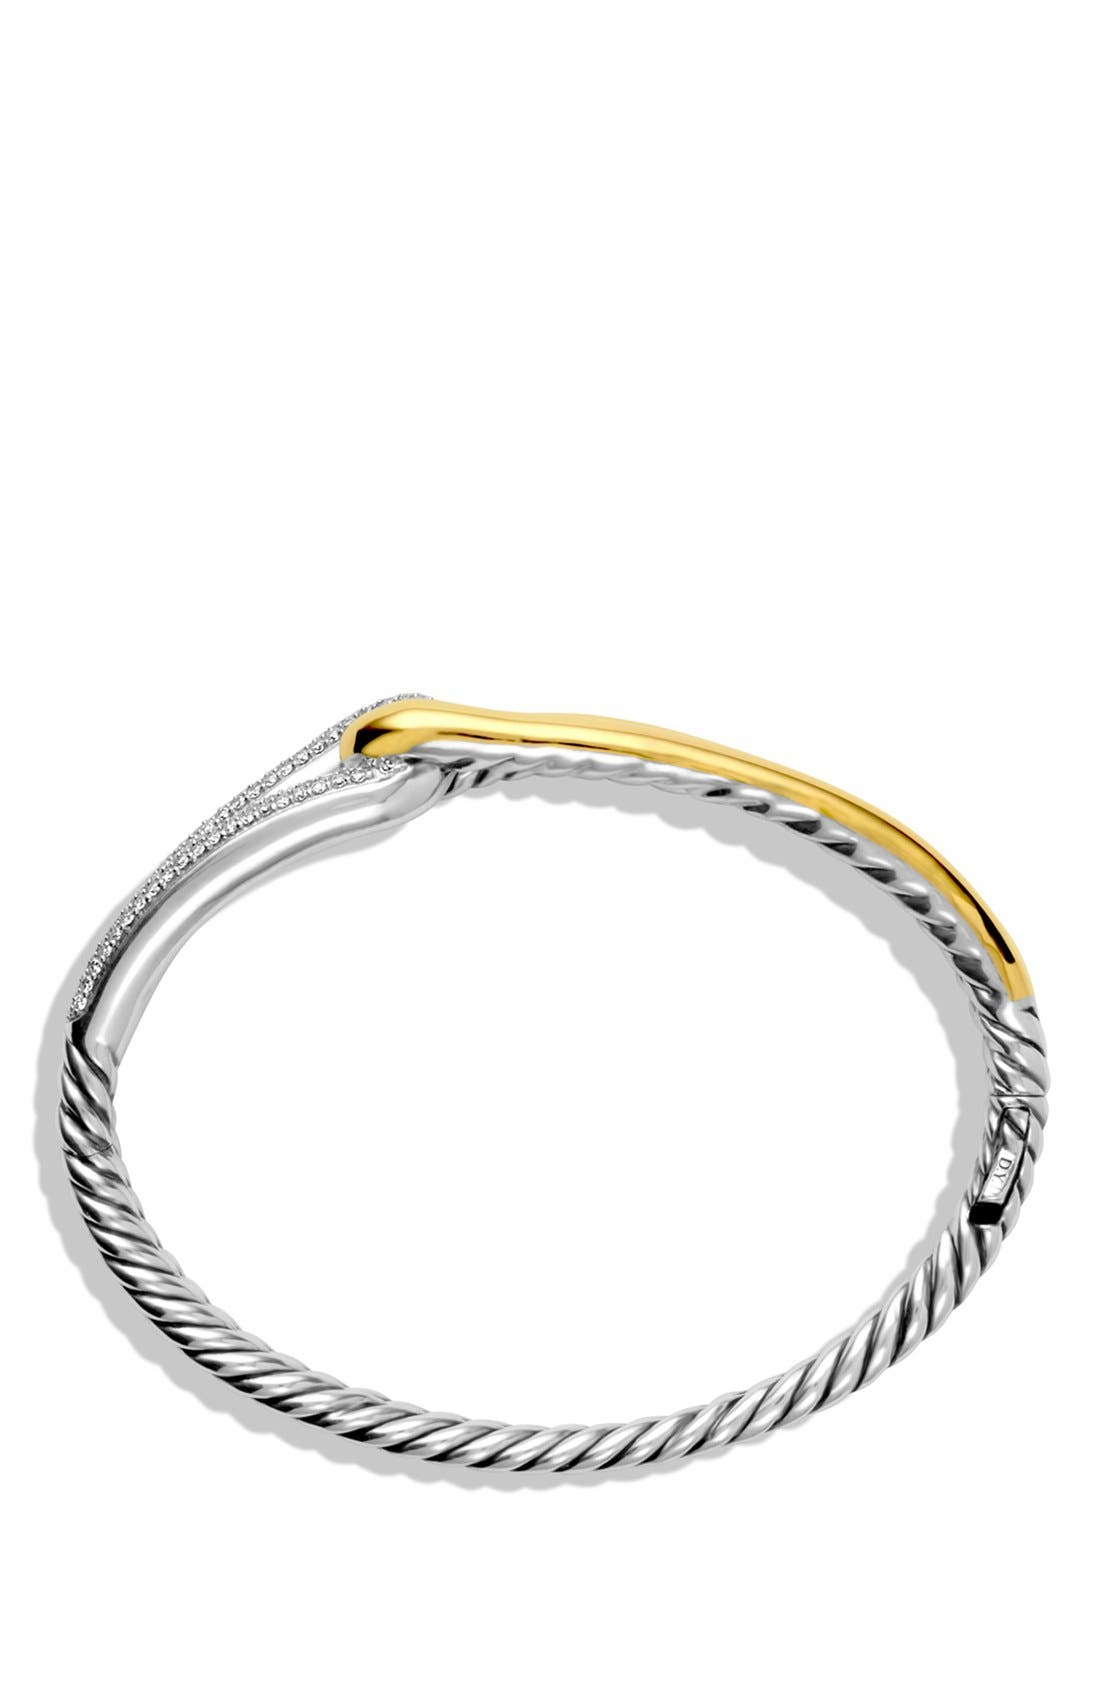 'Labyrinth' Single Loop Bracelet with Diamonds,                             Alternate thumbnail 2, color,                             040